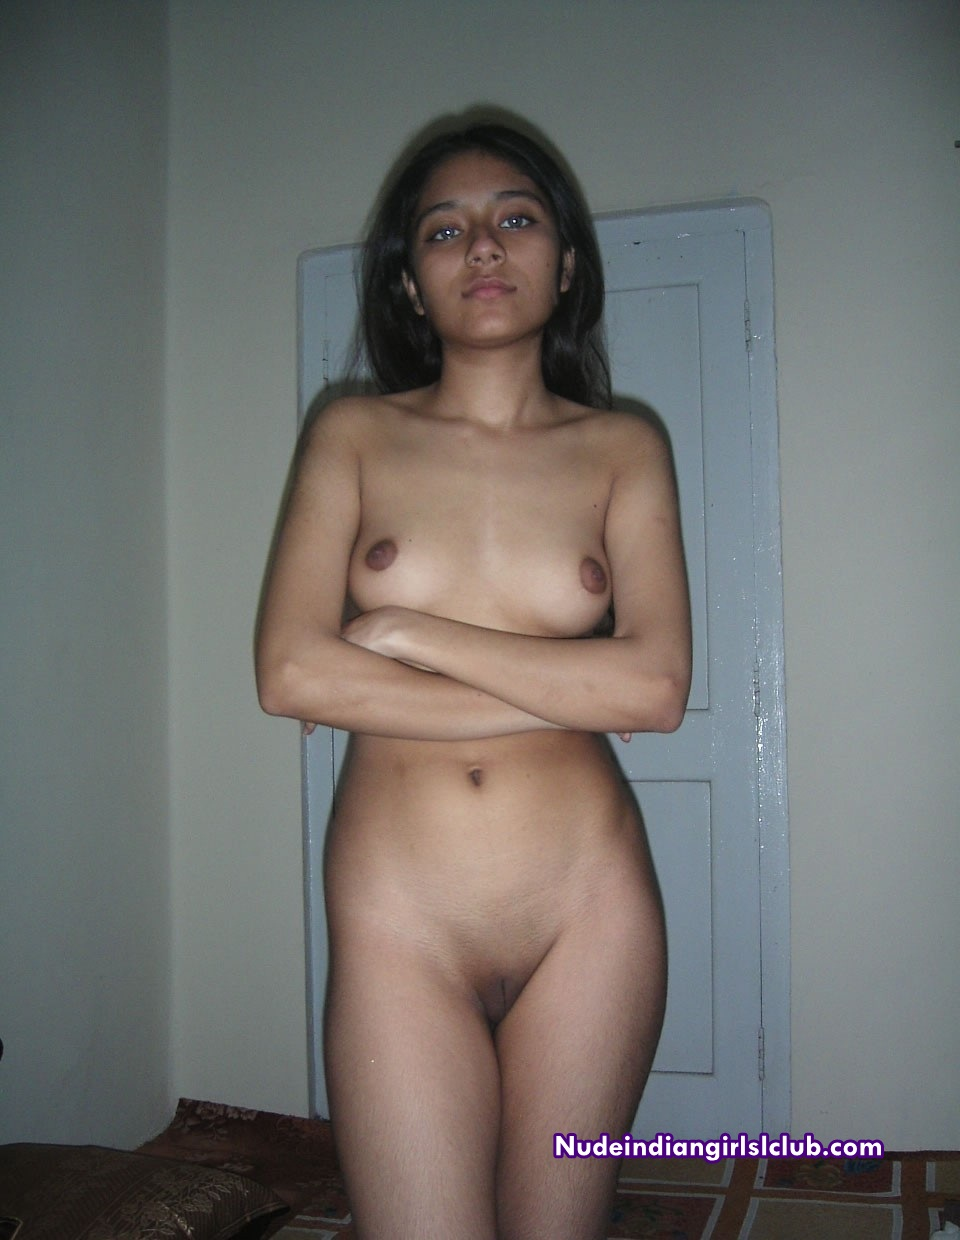 Indian Girls Nude - Indian Girls Club & Nude Indian Girls